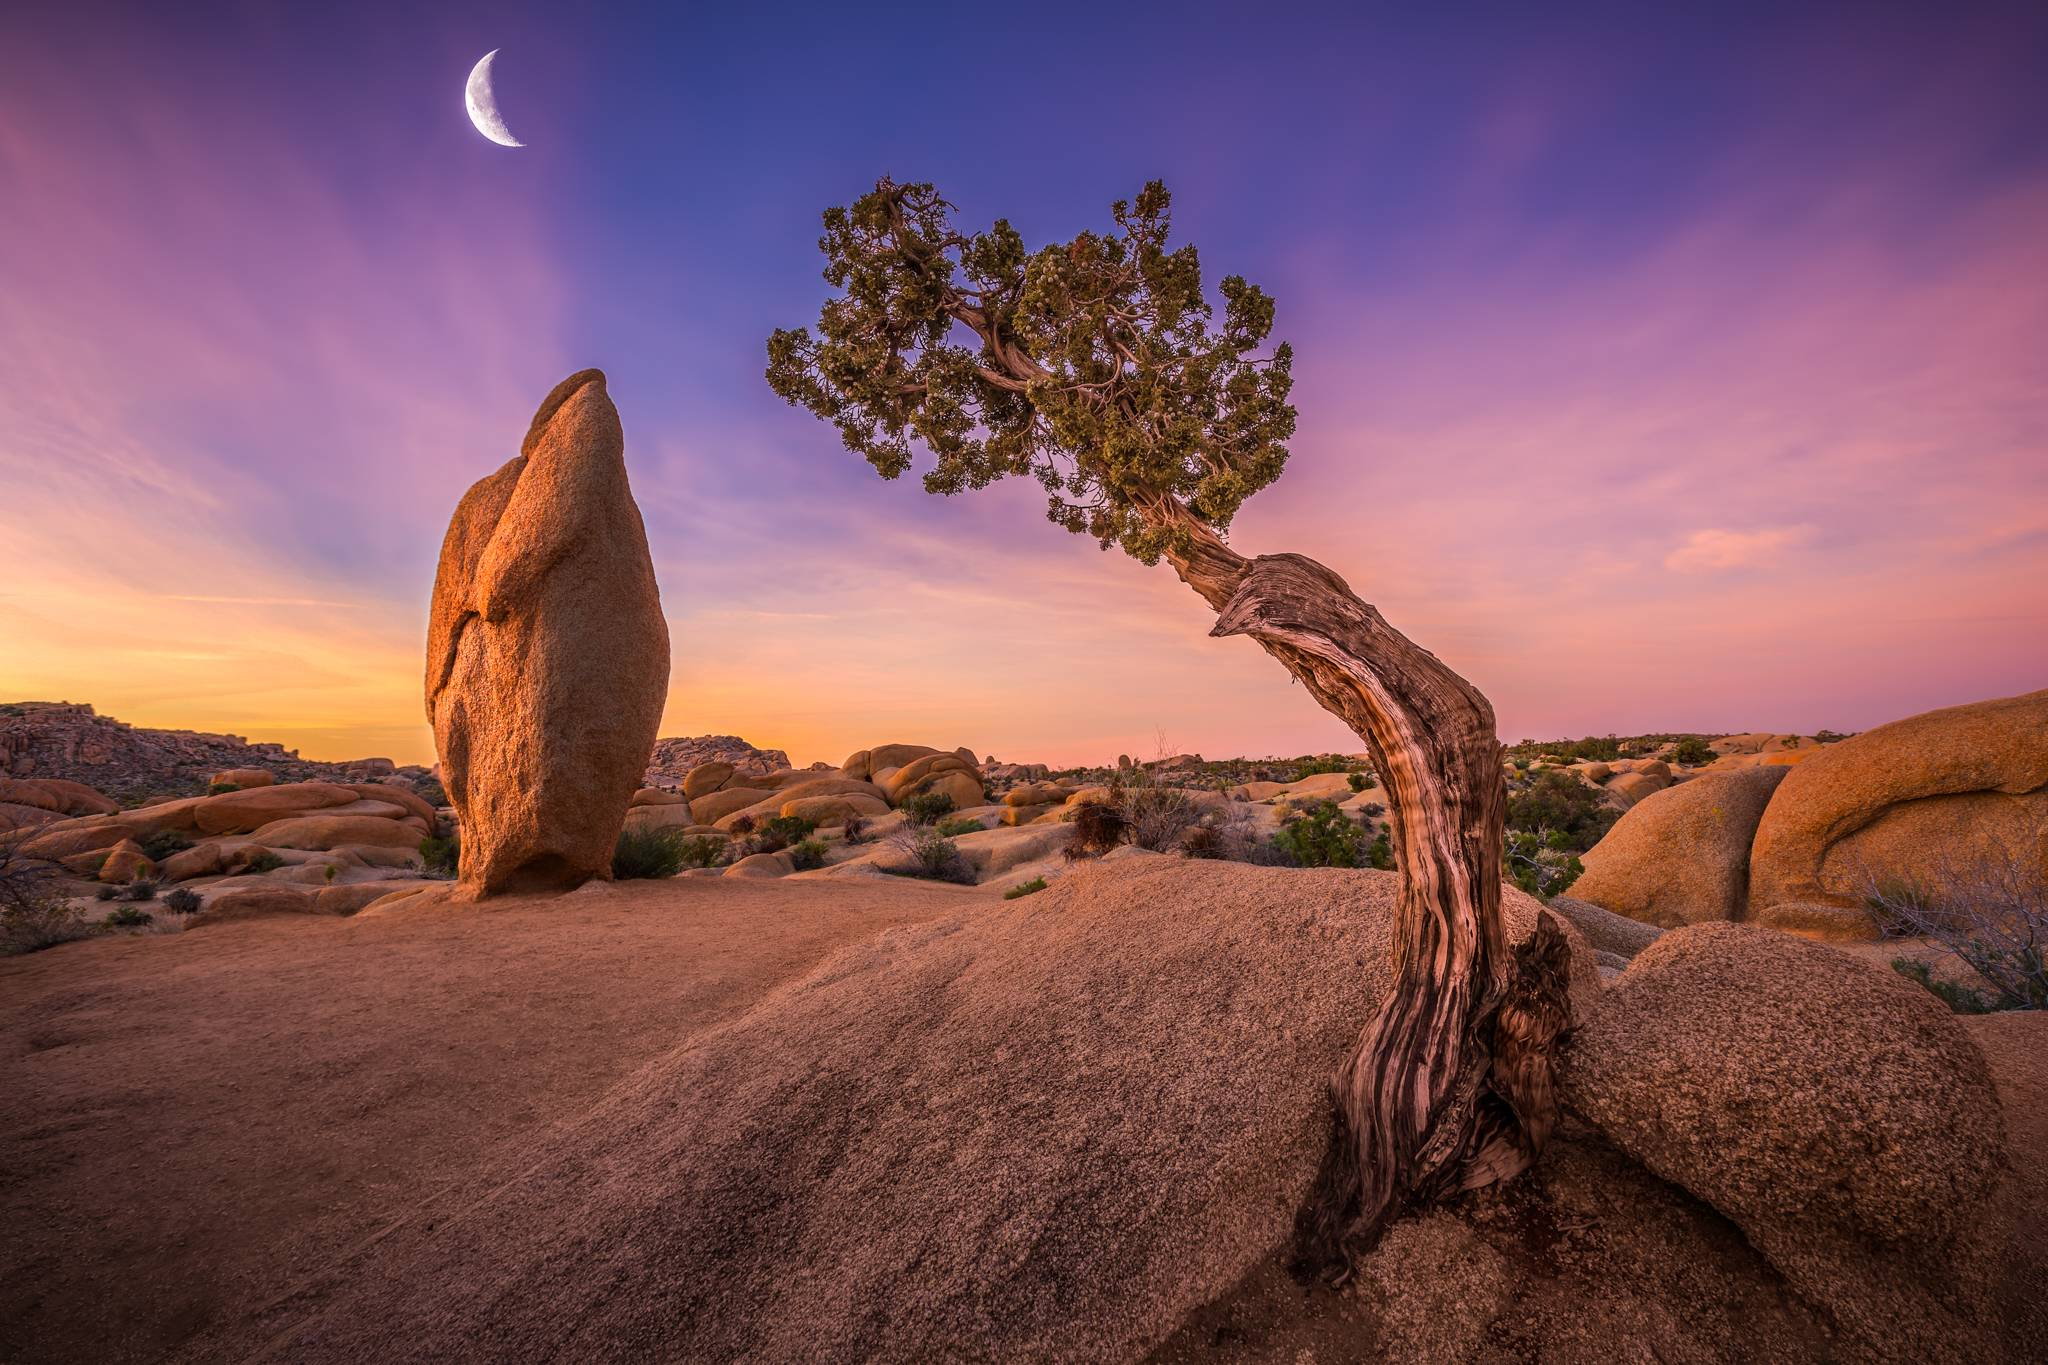 Joshua Tree National Park Wallpaper Hd Nature 4k Wallpapers Images Photos And Background